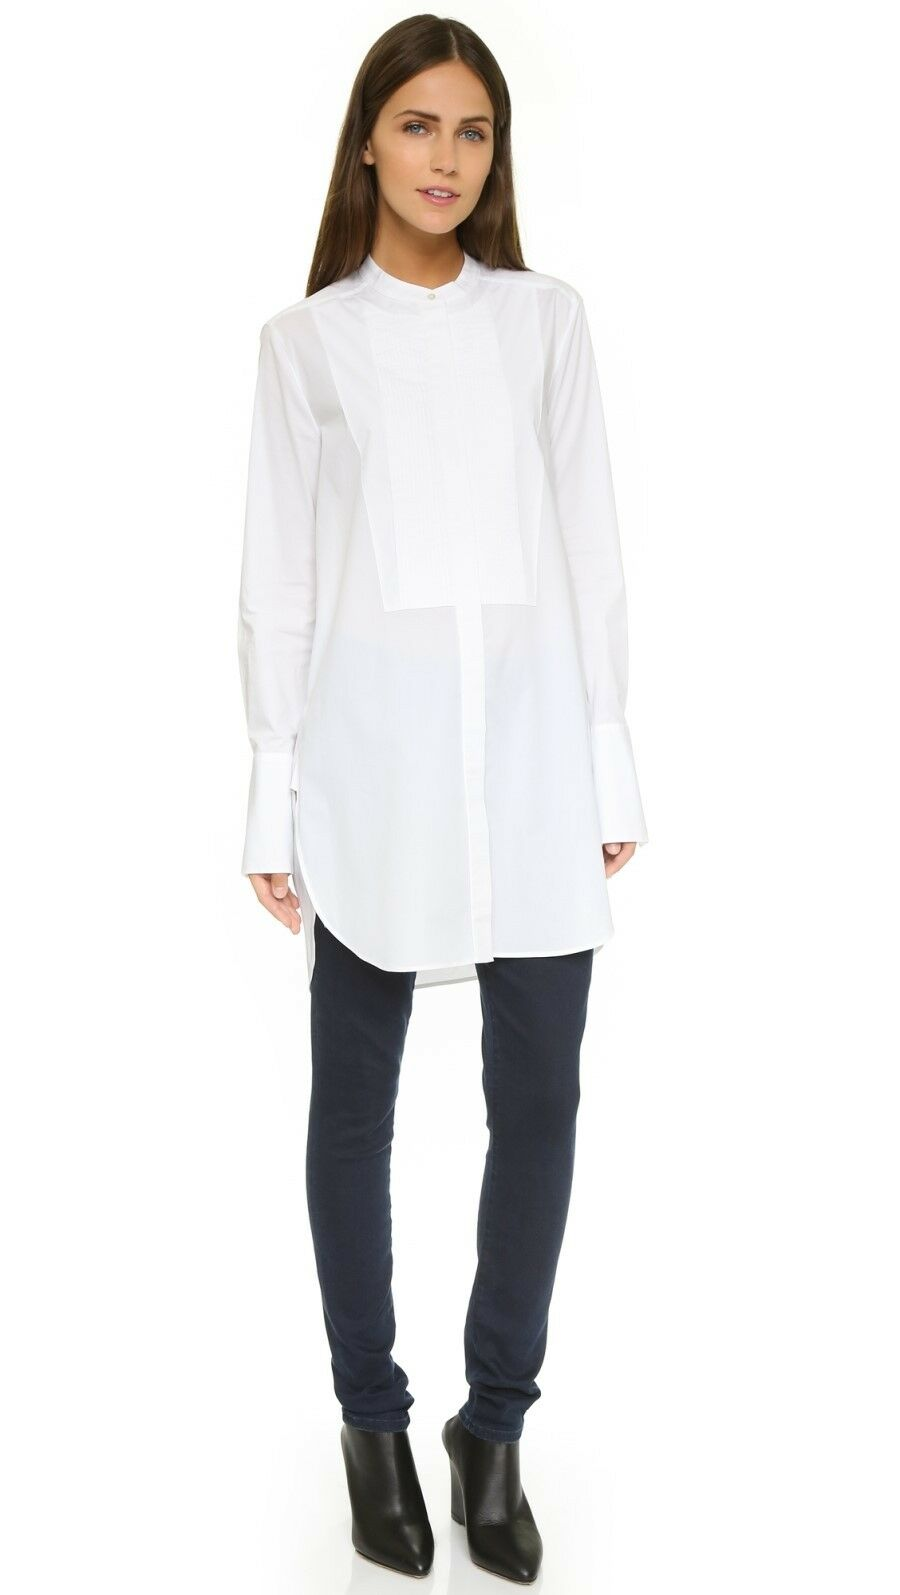 NWT Vince Poplin Pleat Tunic Shirt White Size XS, S